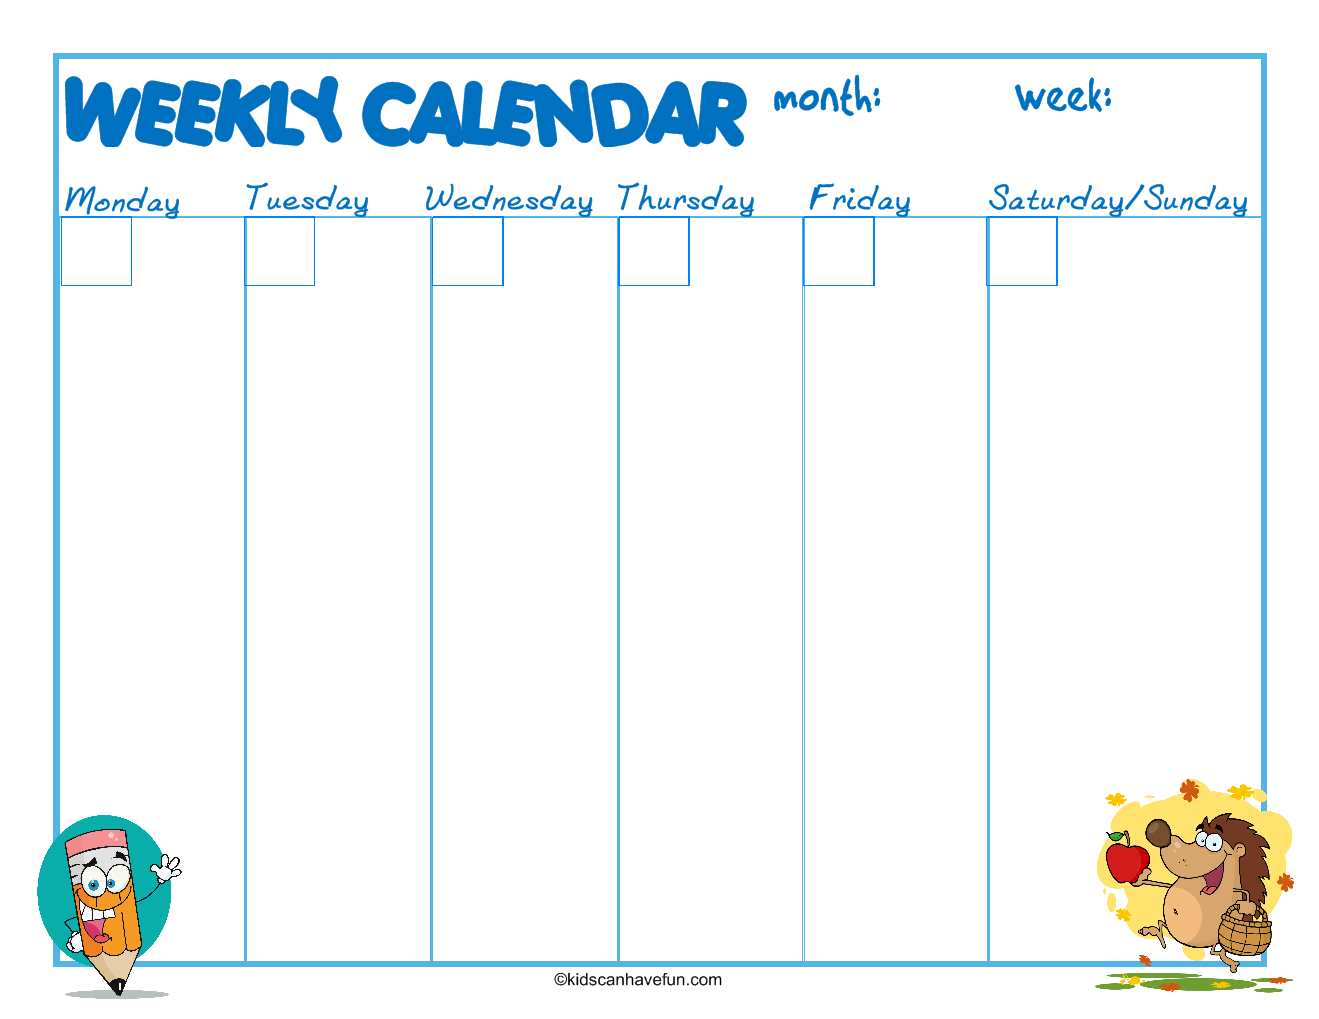 School Weekly Calendar To Record Activities And Homework